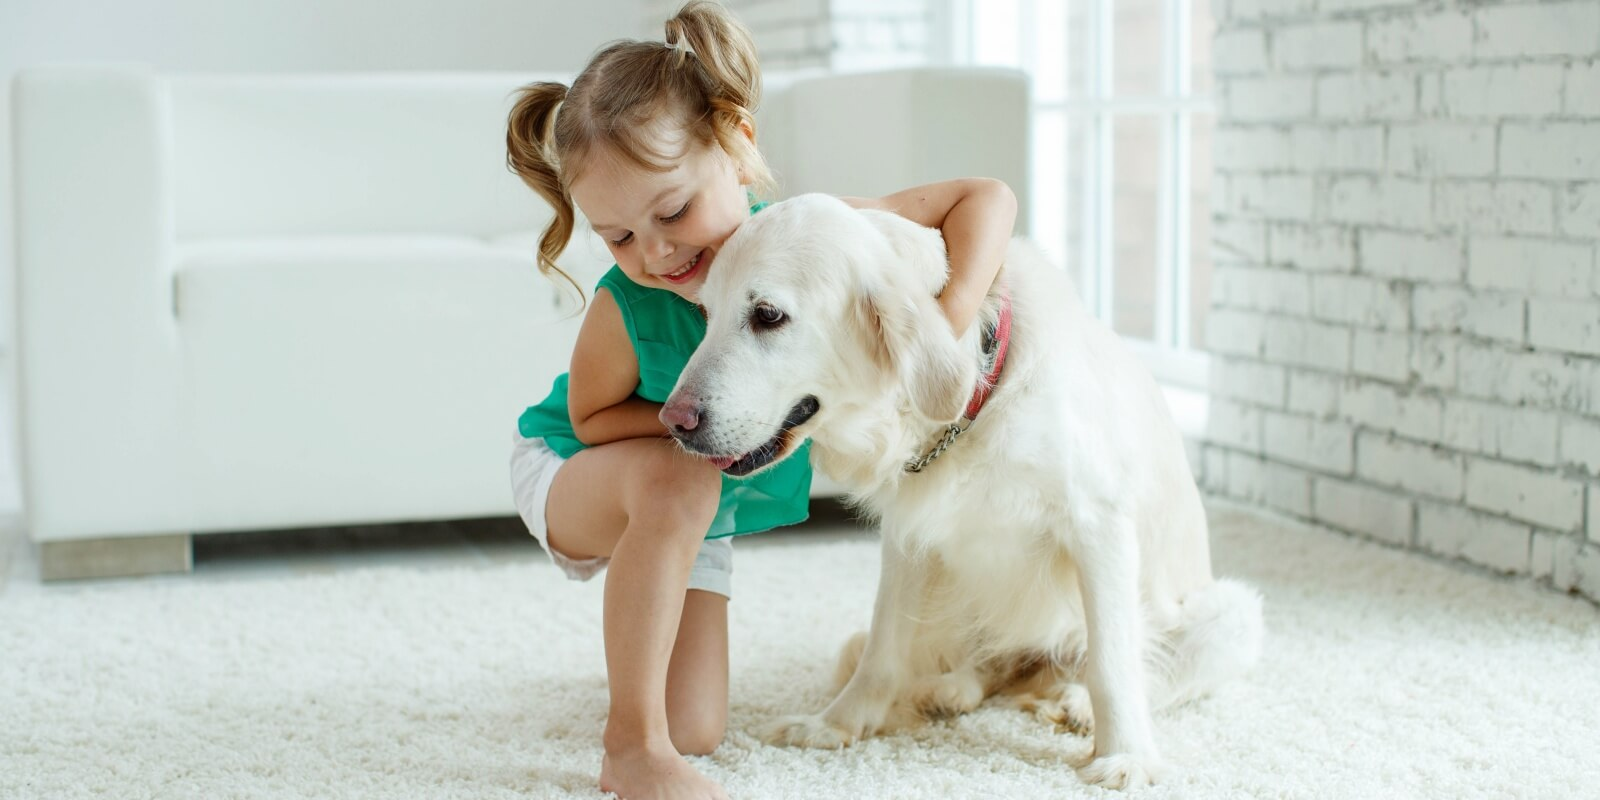 Cute girl with her dog on a clean carpet